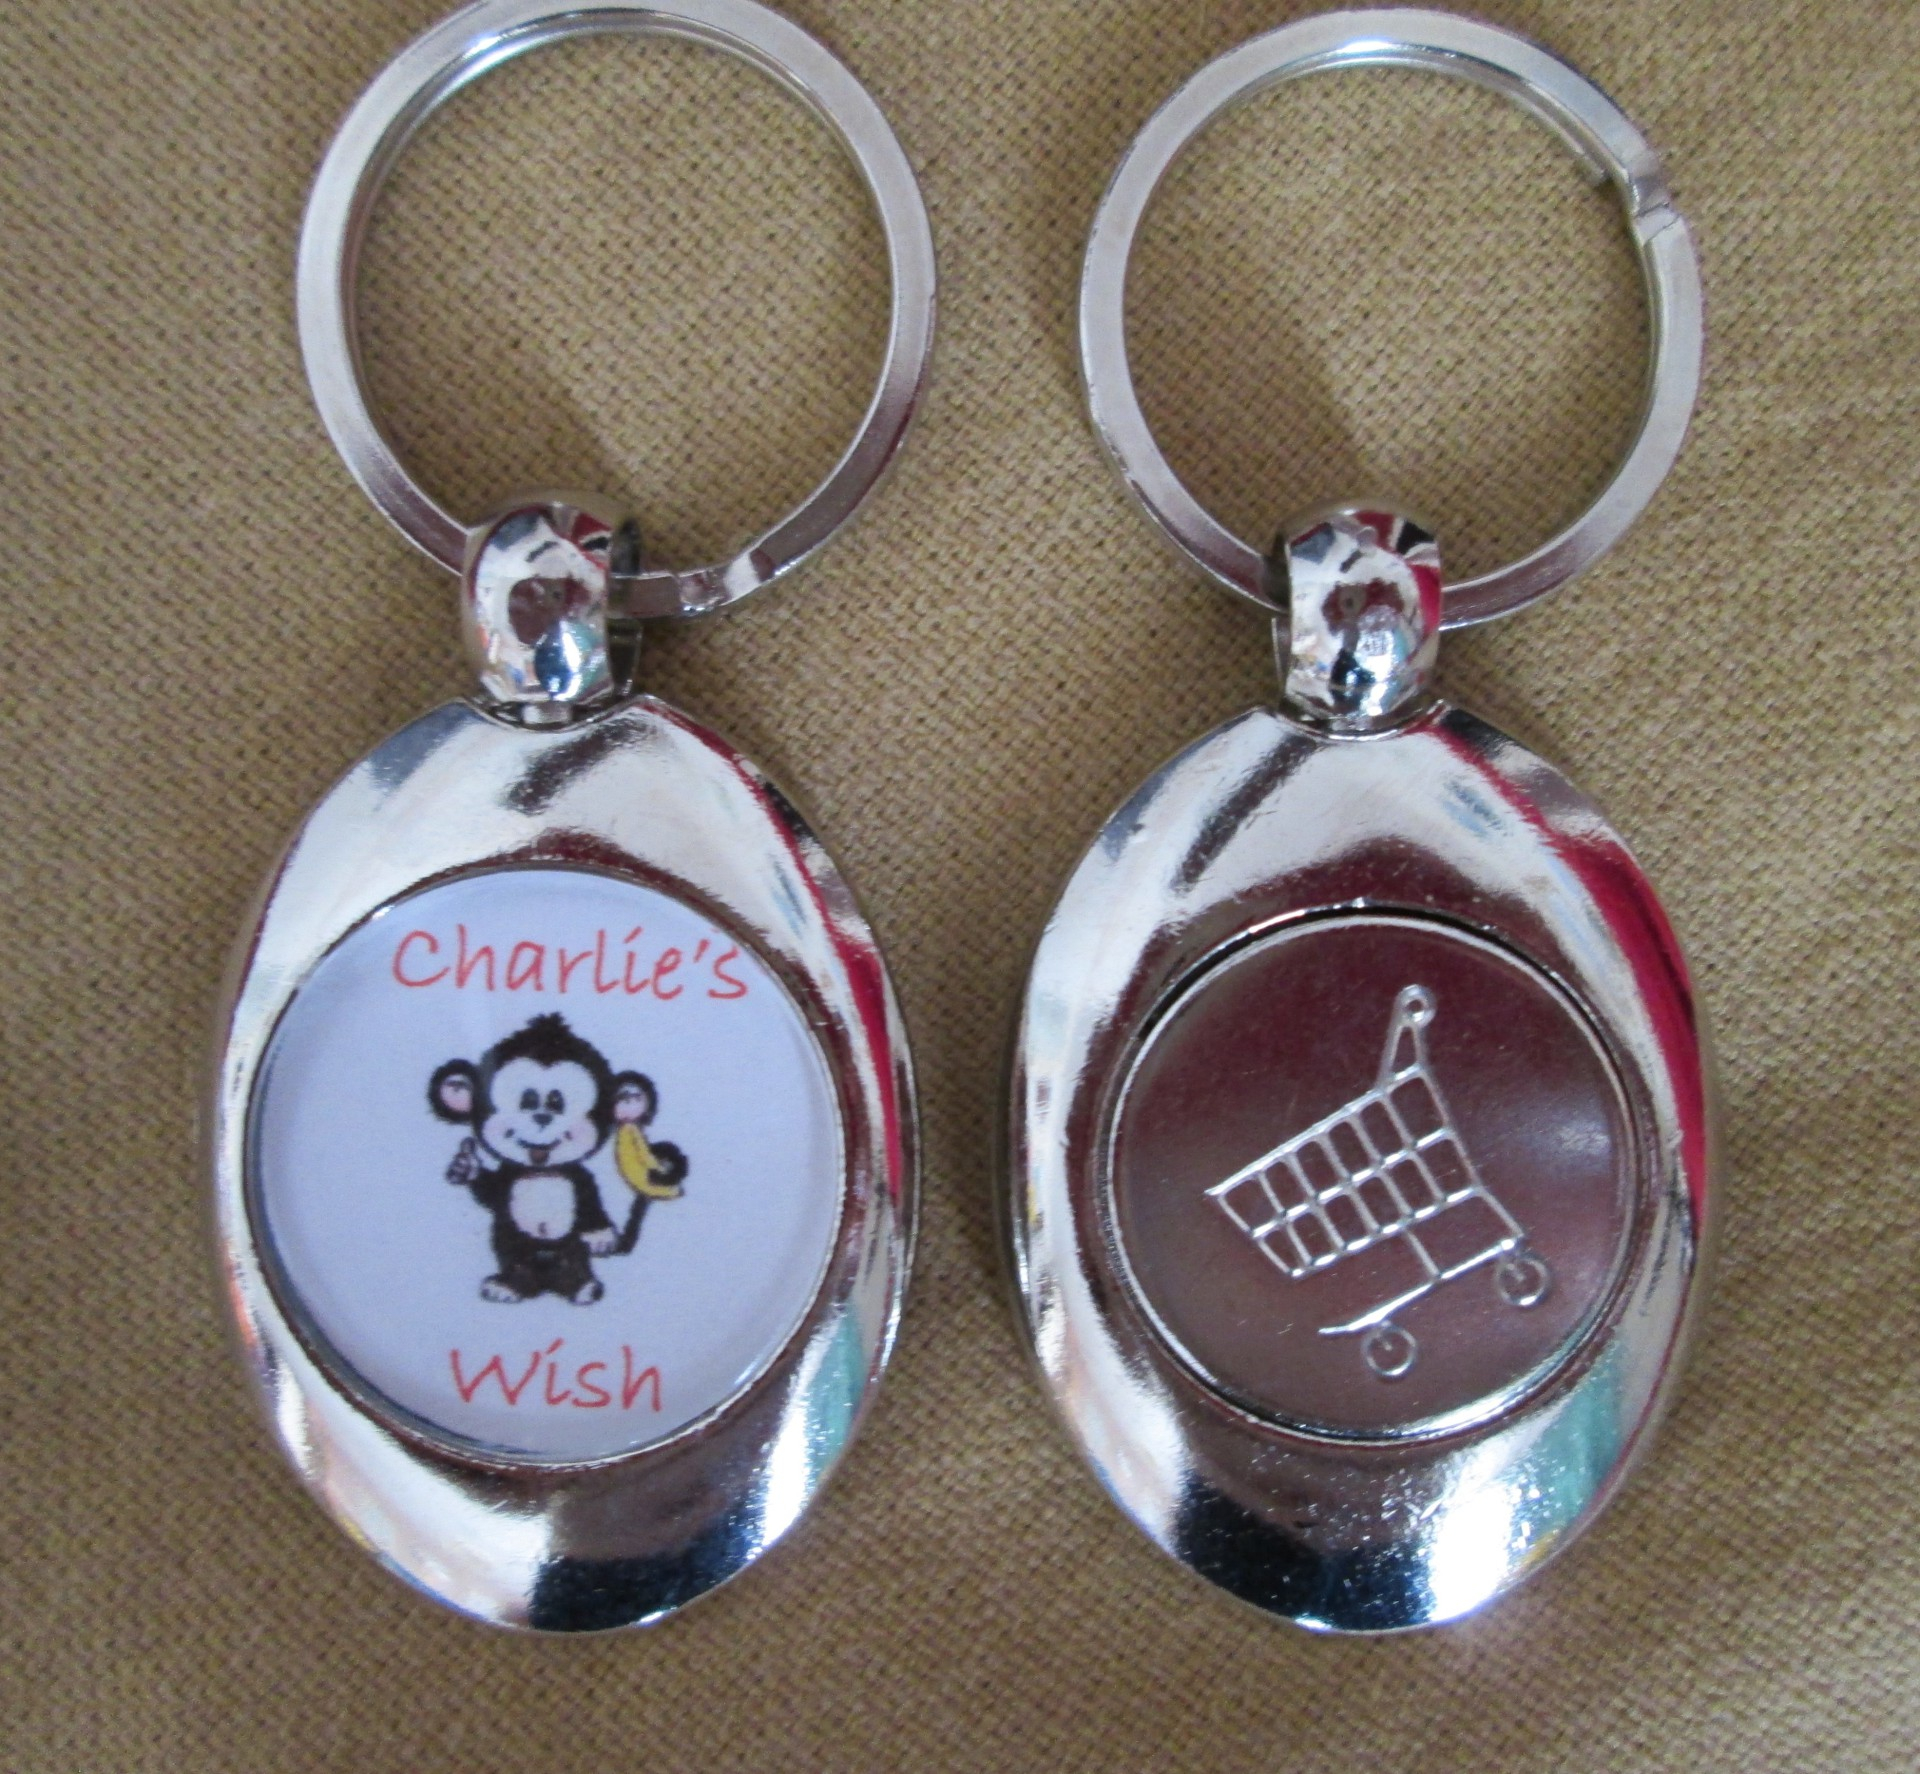 Charlie's Wish Trolley key ring